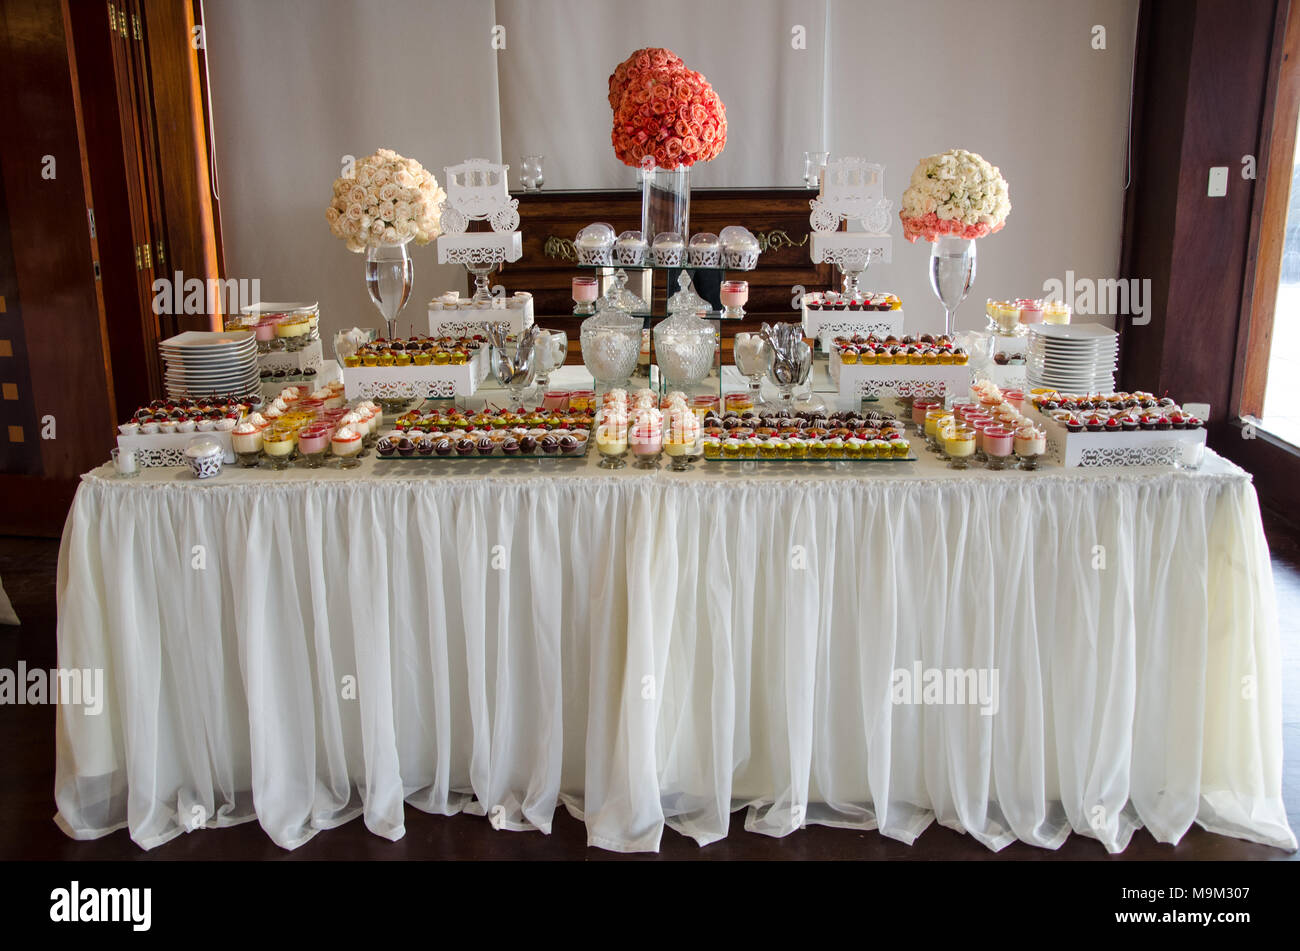 decorating a candy table at a wedding stock photo 178076983 alamy